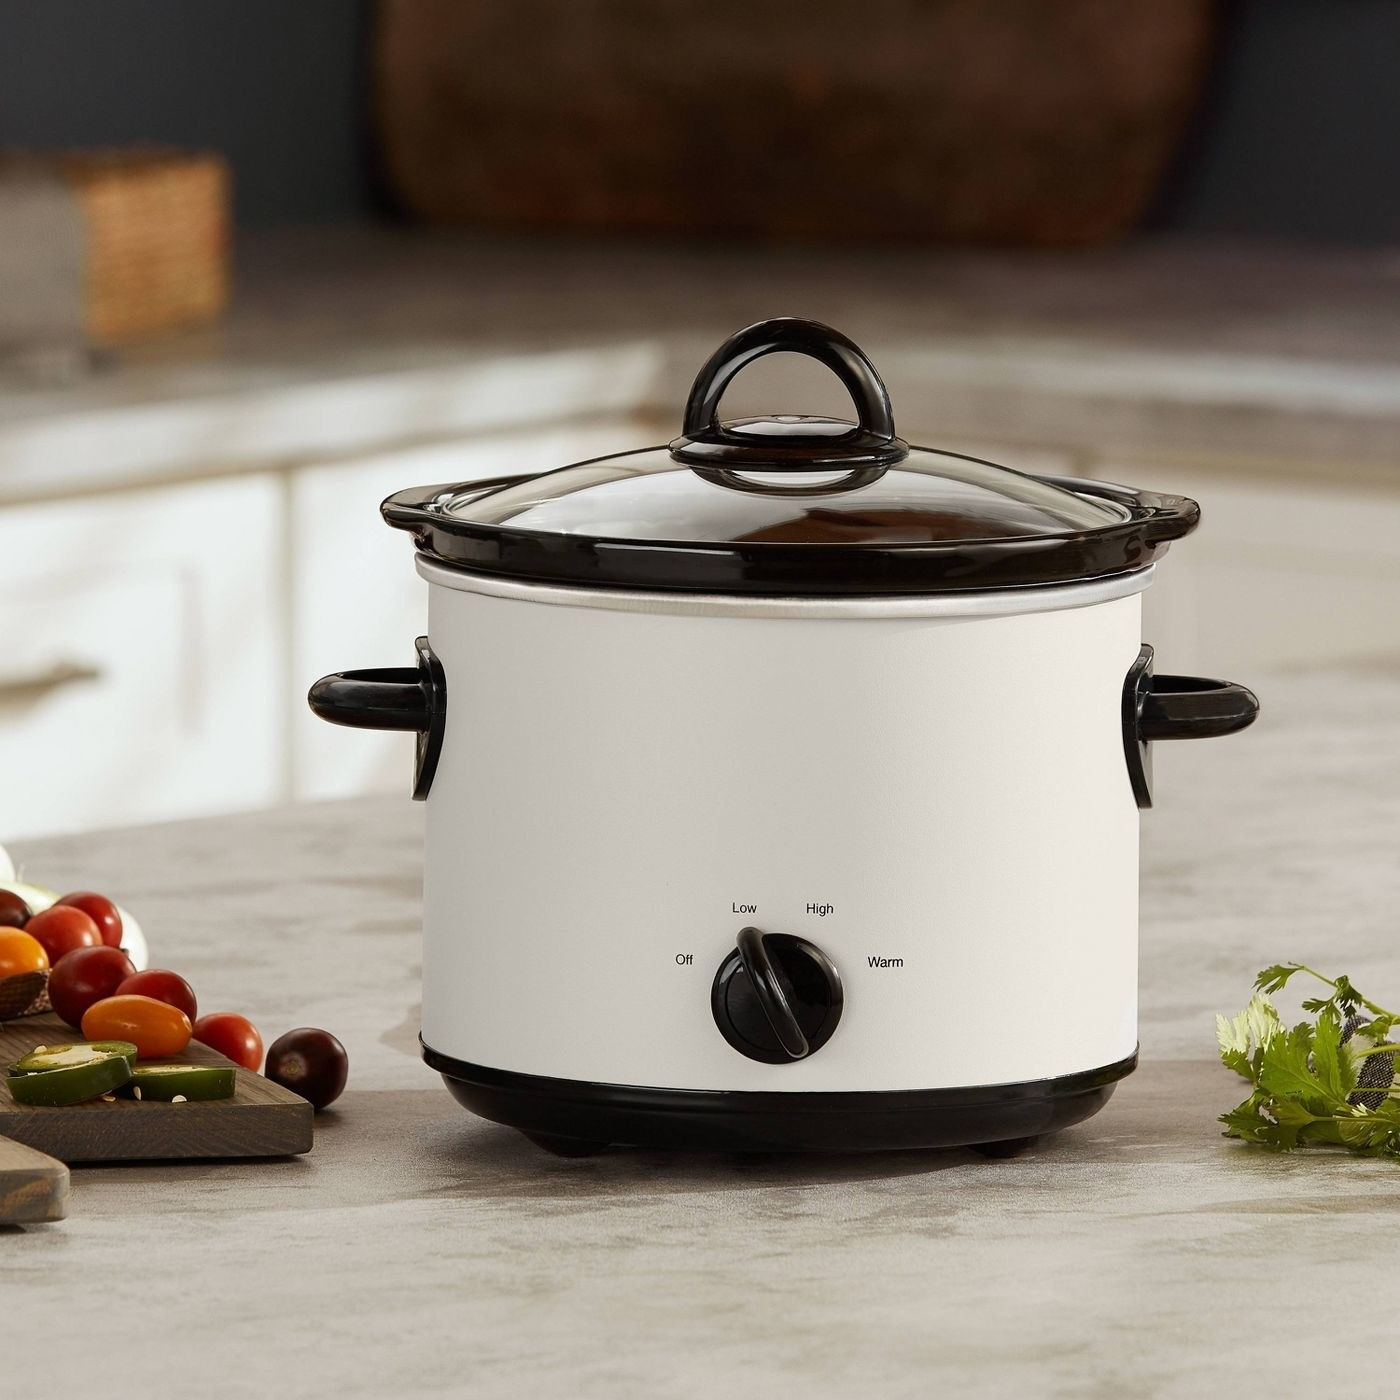 The slow cookers, which has a matter, cream body, and black handles and accents